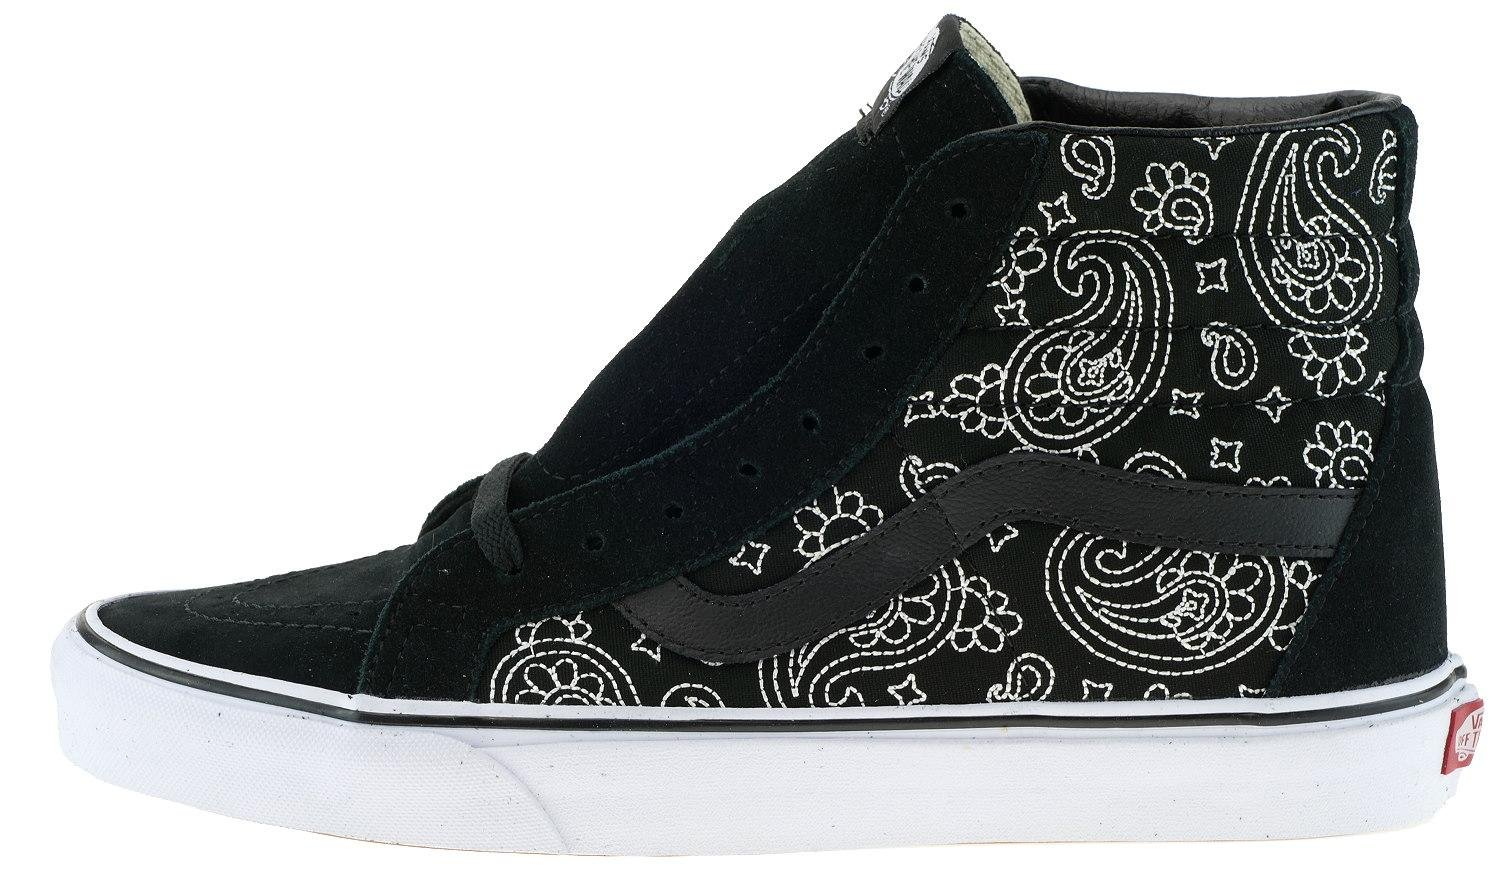 Vans Unisex Sk8-Hi Slim Women's Skate Shoe B011SL4P0A 12.5 B(M) US Women / 11 D(M) US Men|Bandana / Black / White